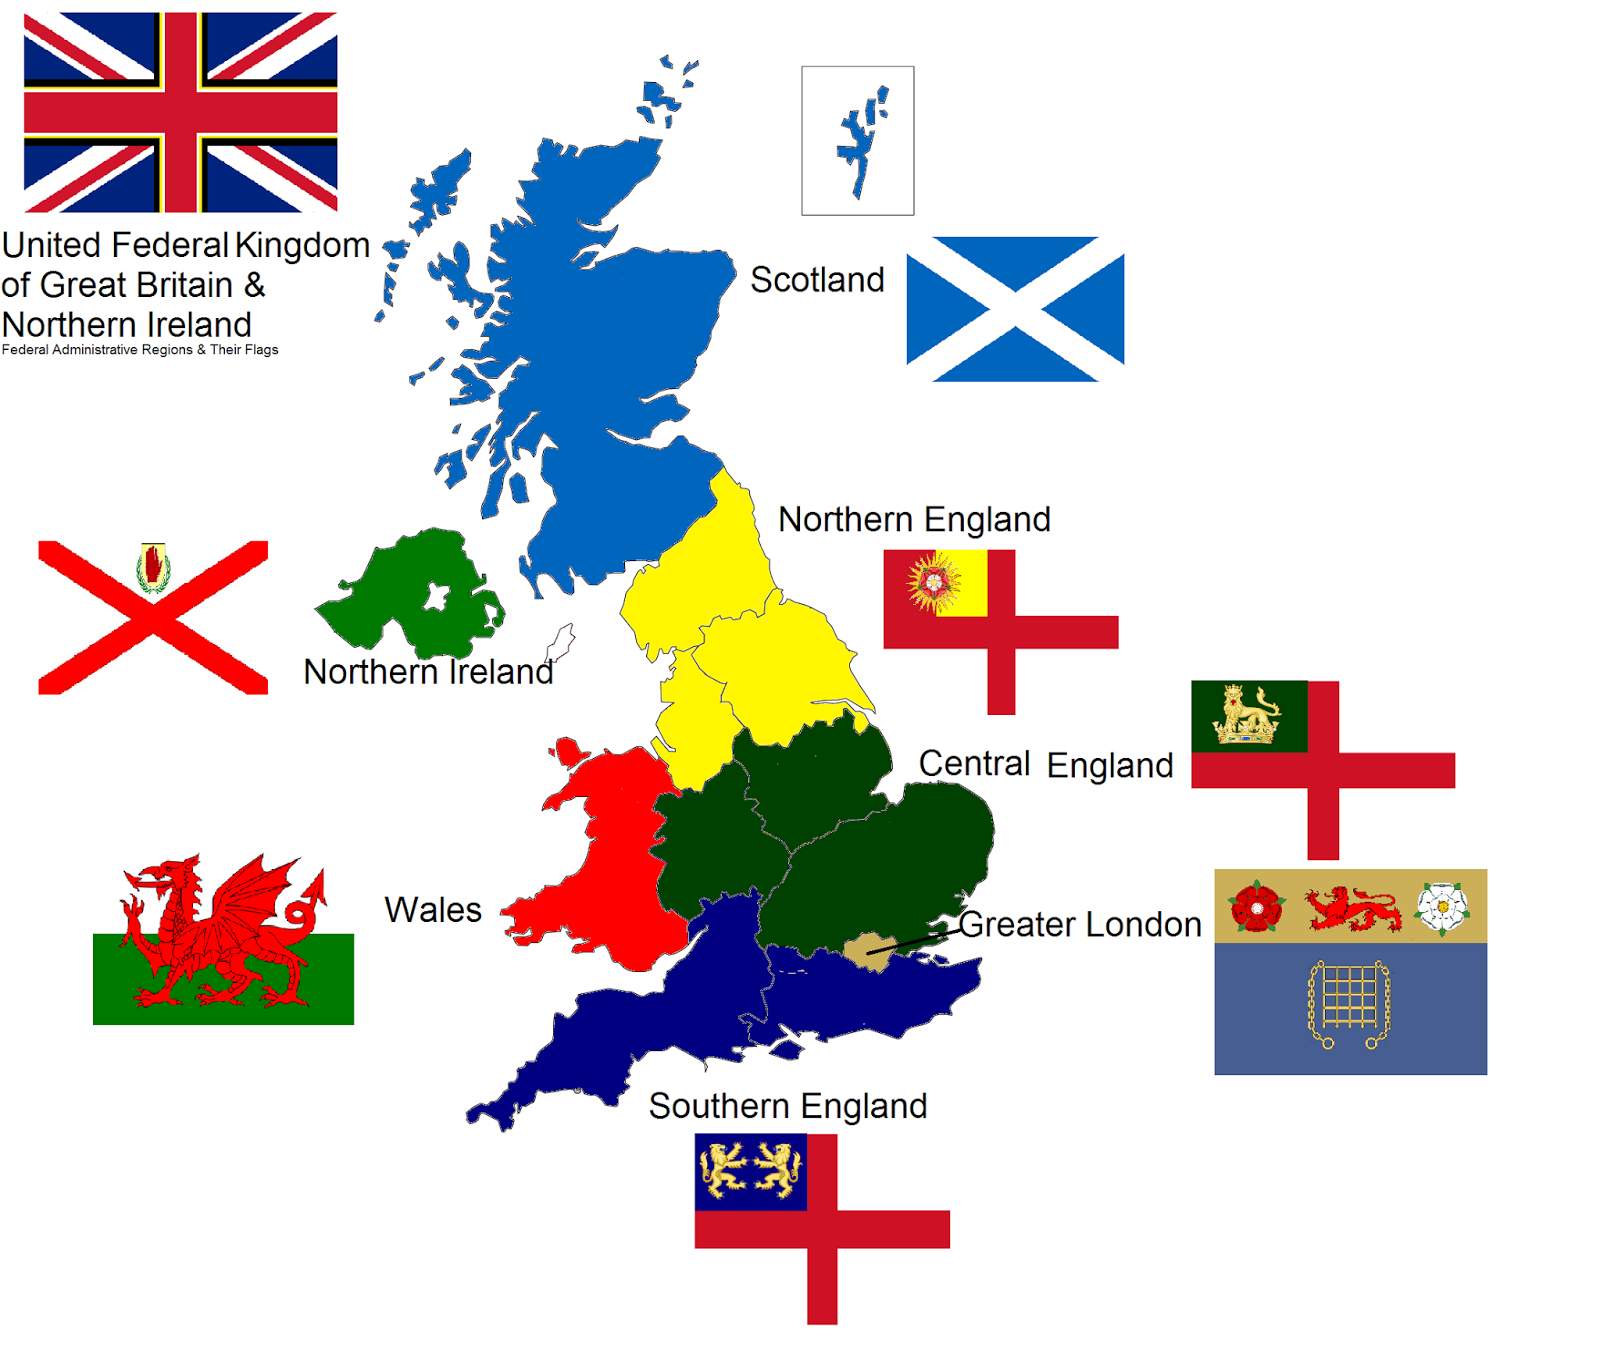 is there a map showing location of Hanover, England - Yahoo ... on geography of uk, map of england uk, a map sweden, map of wales uk, a map spain, index of uk, timeline of uk, map of scotland uk, economy of uk, detailed map of uk, weather of uk, address of uk,